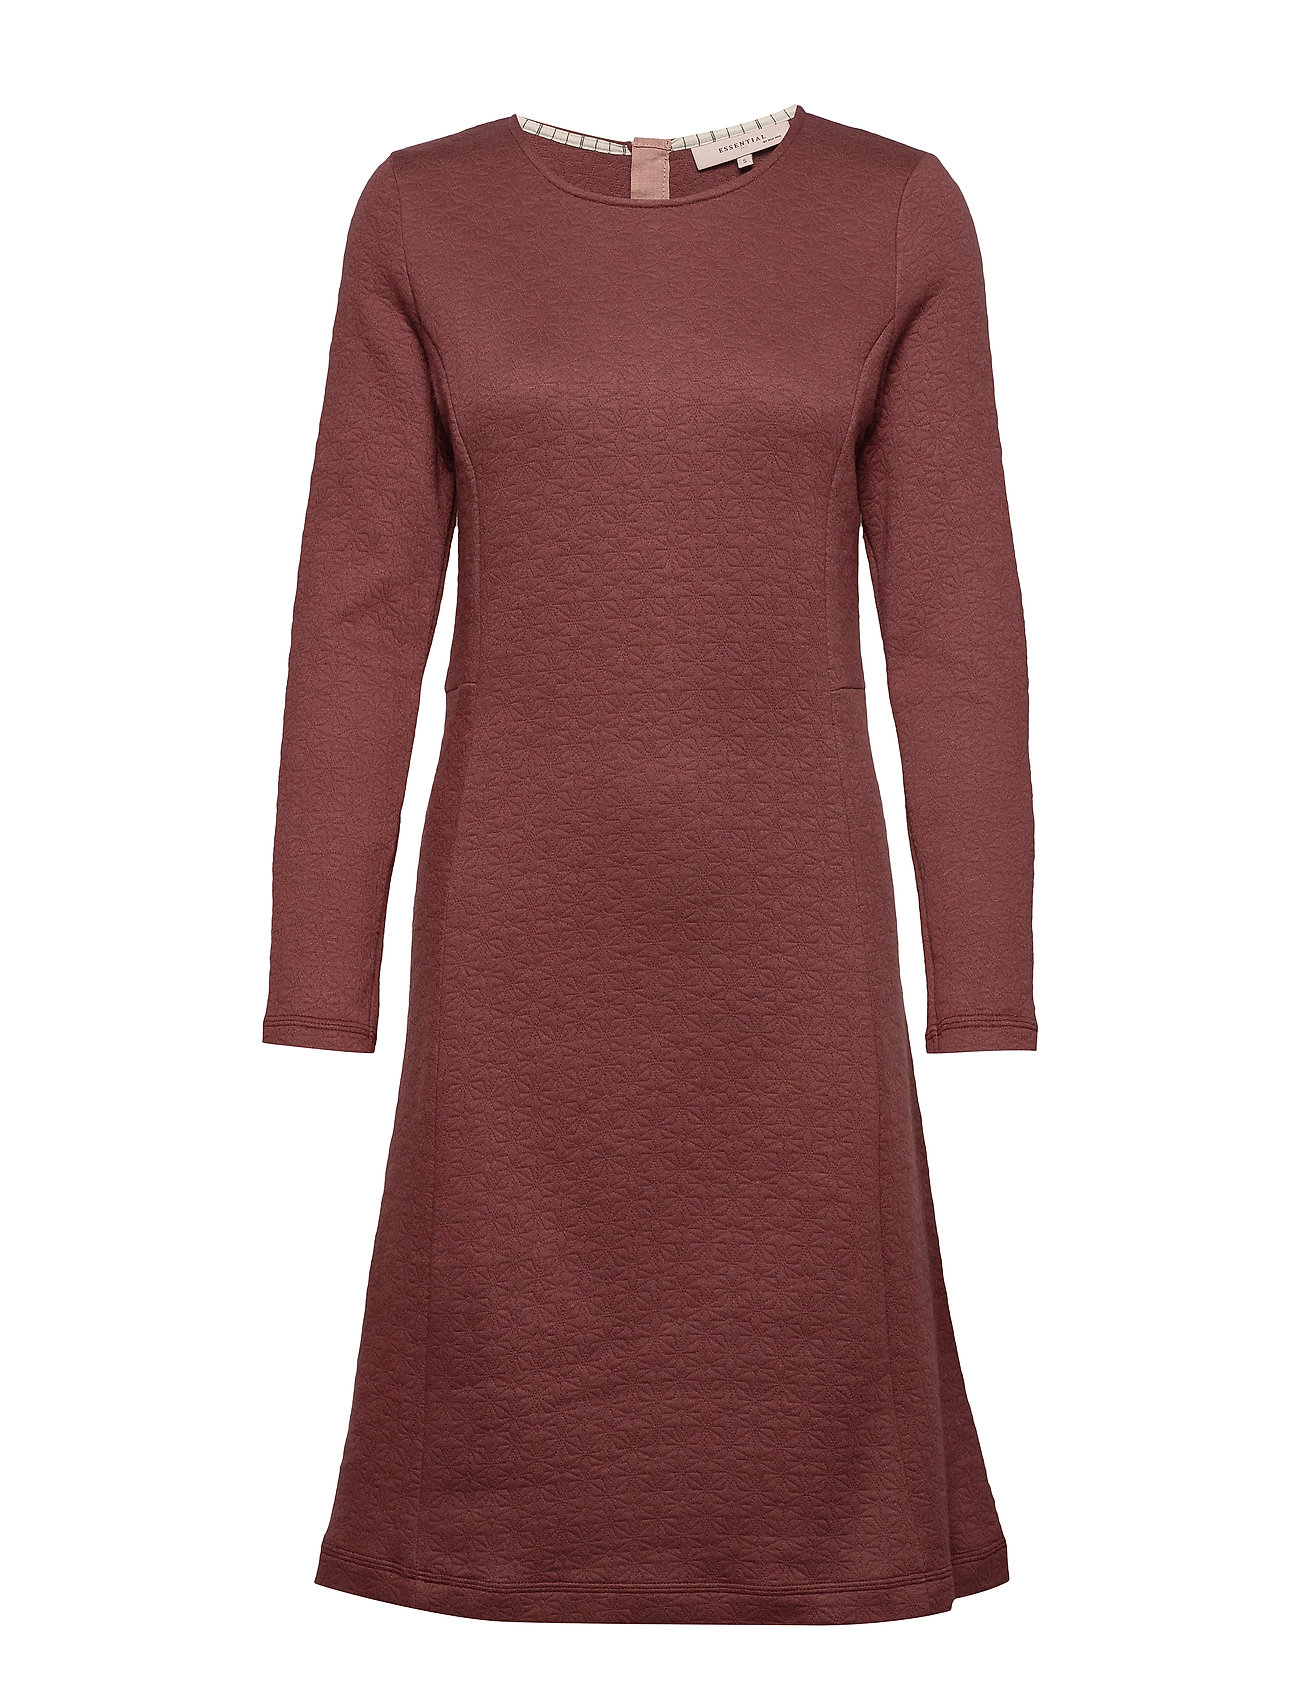 Noa Noa Dress long sleeve - SASSAFRAS